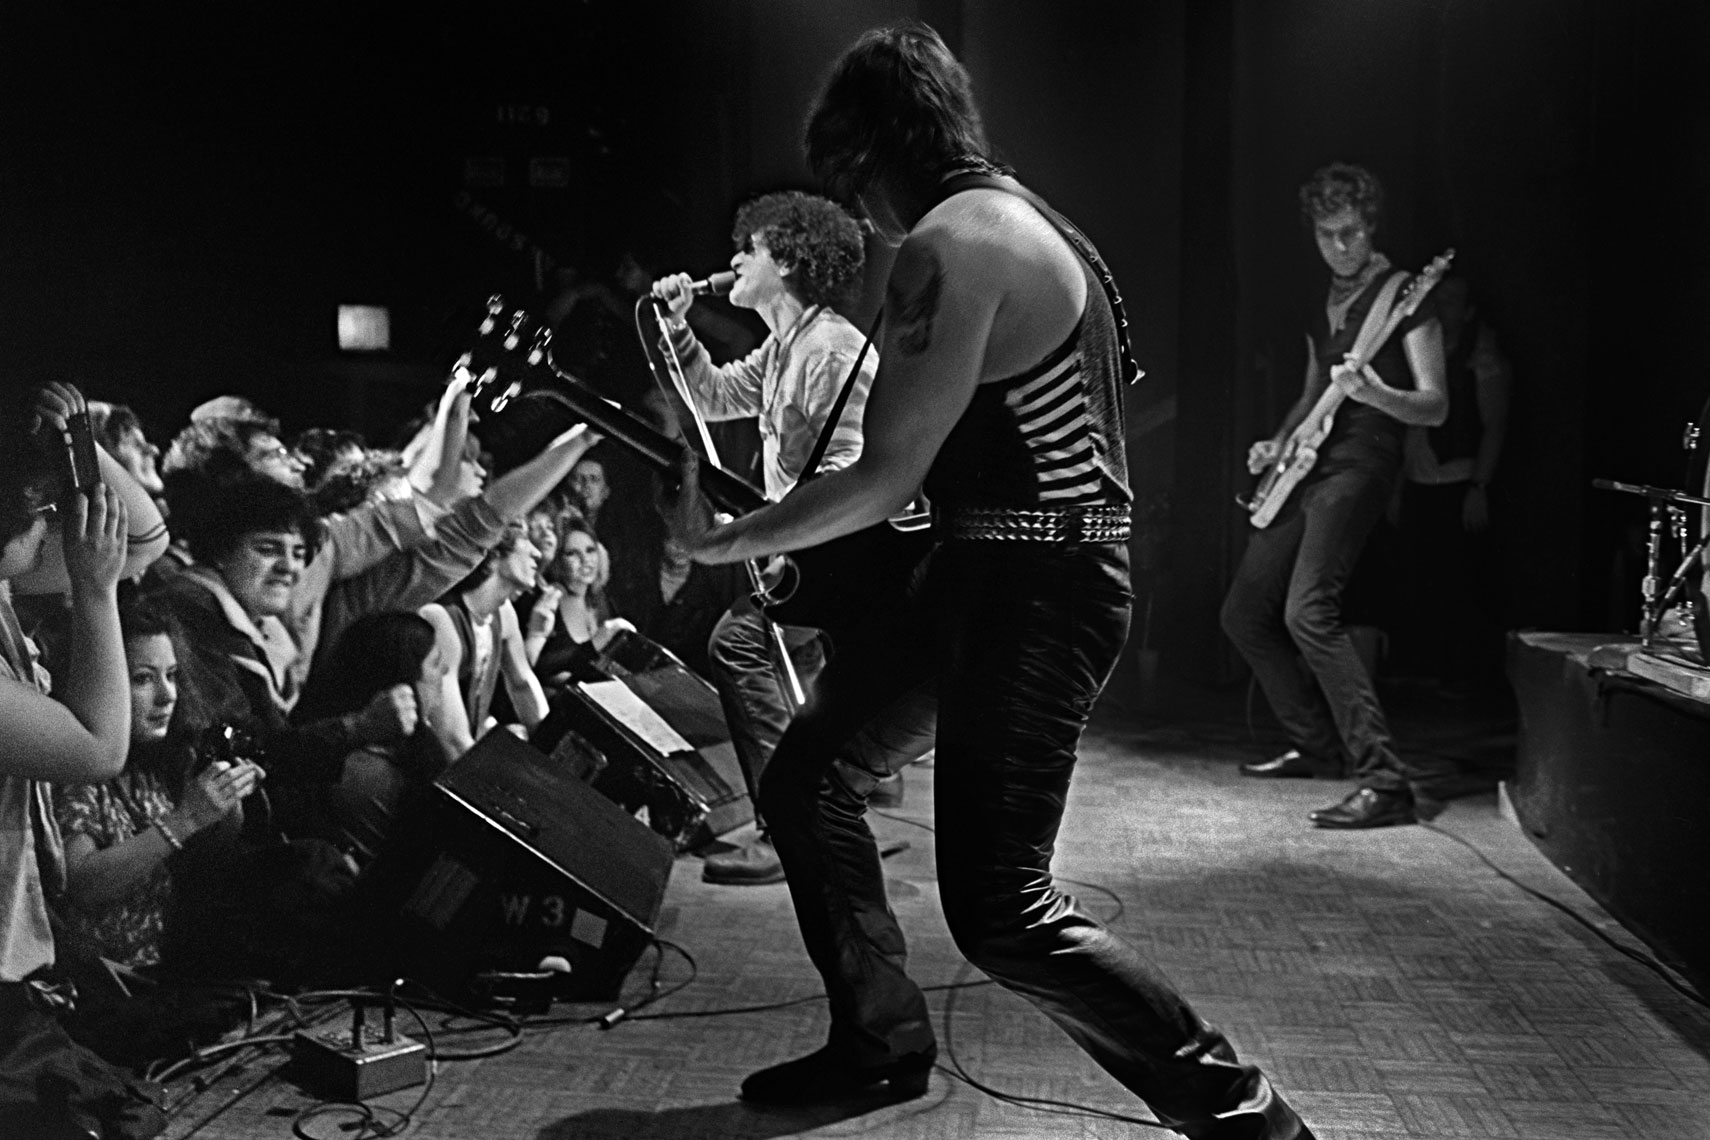 14_The-Dictators-Irving-Plaza_0281.jpg